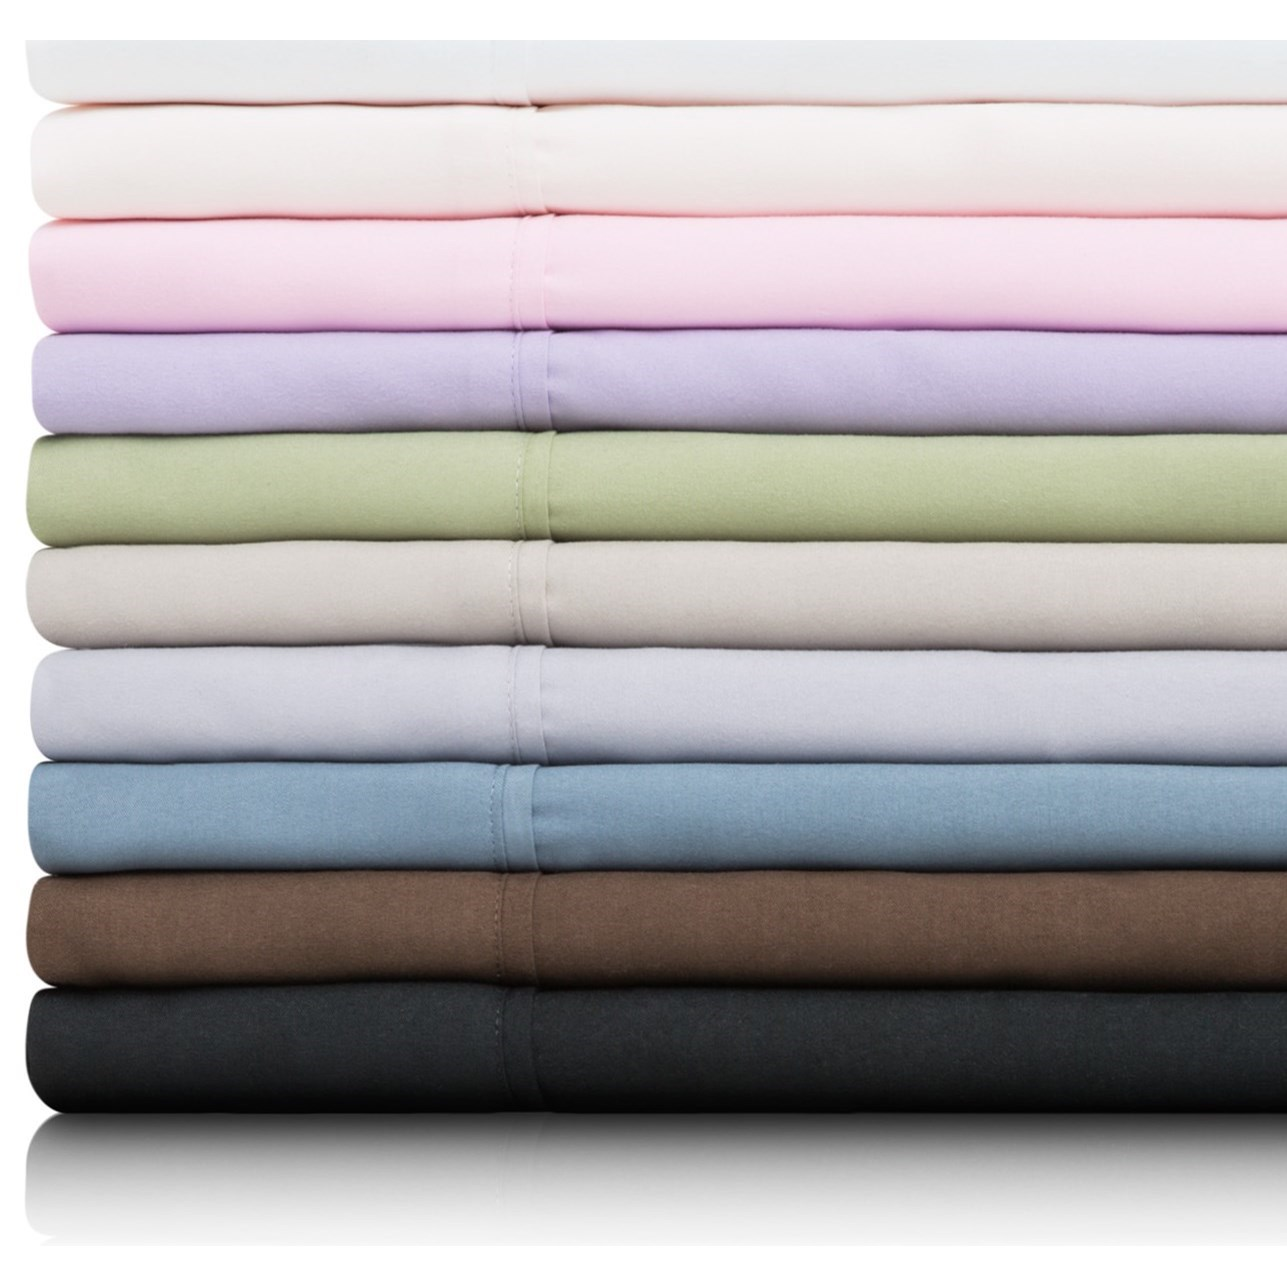 Malouf Brushed Microfiber Queen Woven™ Brushed Microfiber Olympic Shee - Item Number: MA90OQDRMS